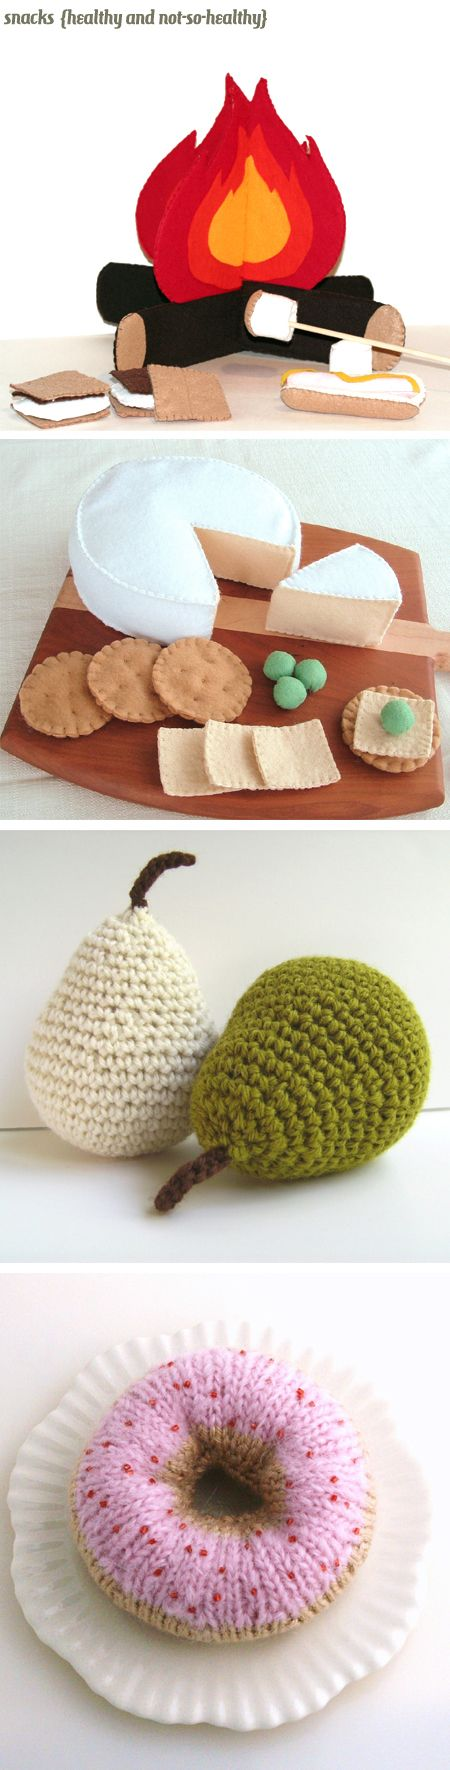 """Comfort Food exhibit from the Jealous Curator - """"Imagine if you will a spacious, white walled gallery with polished wood floors. Now, we just need the art… A knitted cupcake? Got it. A felt Egg McMuffin? Yep. Some crocheted sushi? You betcha!"""""""